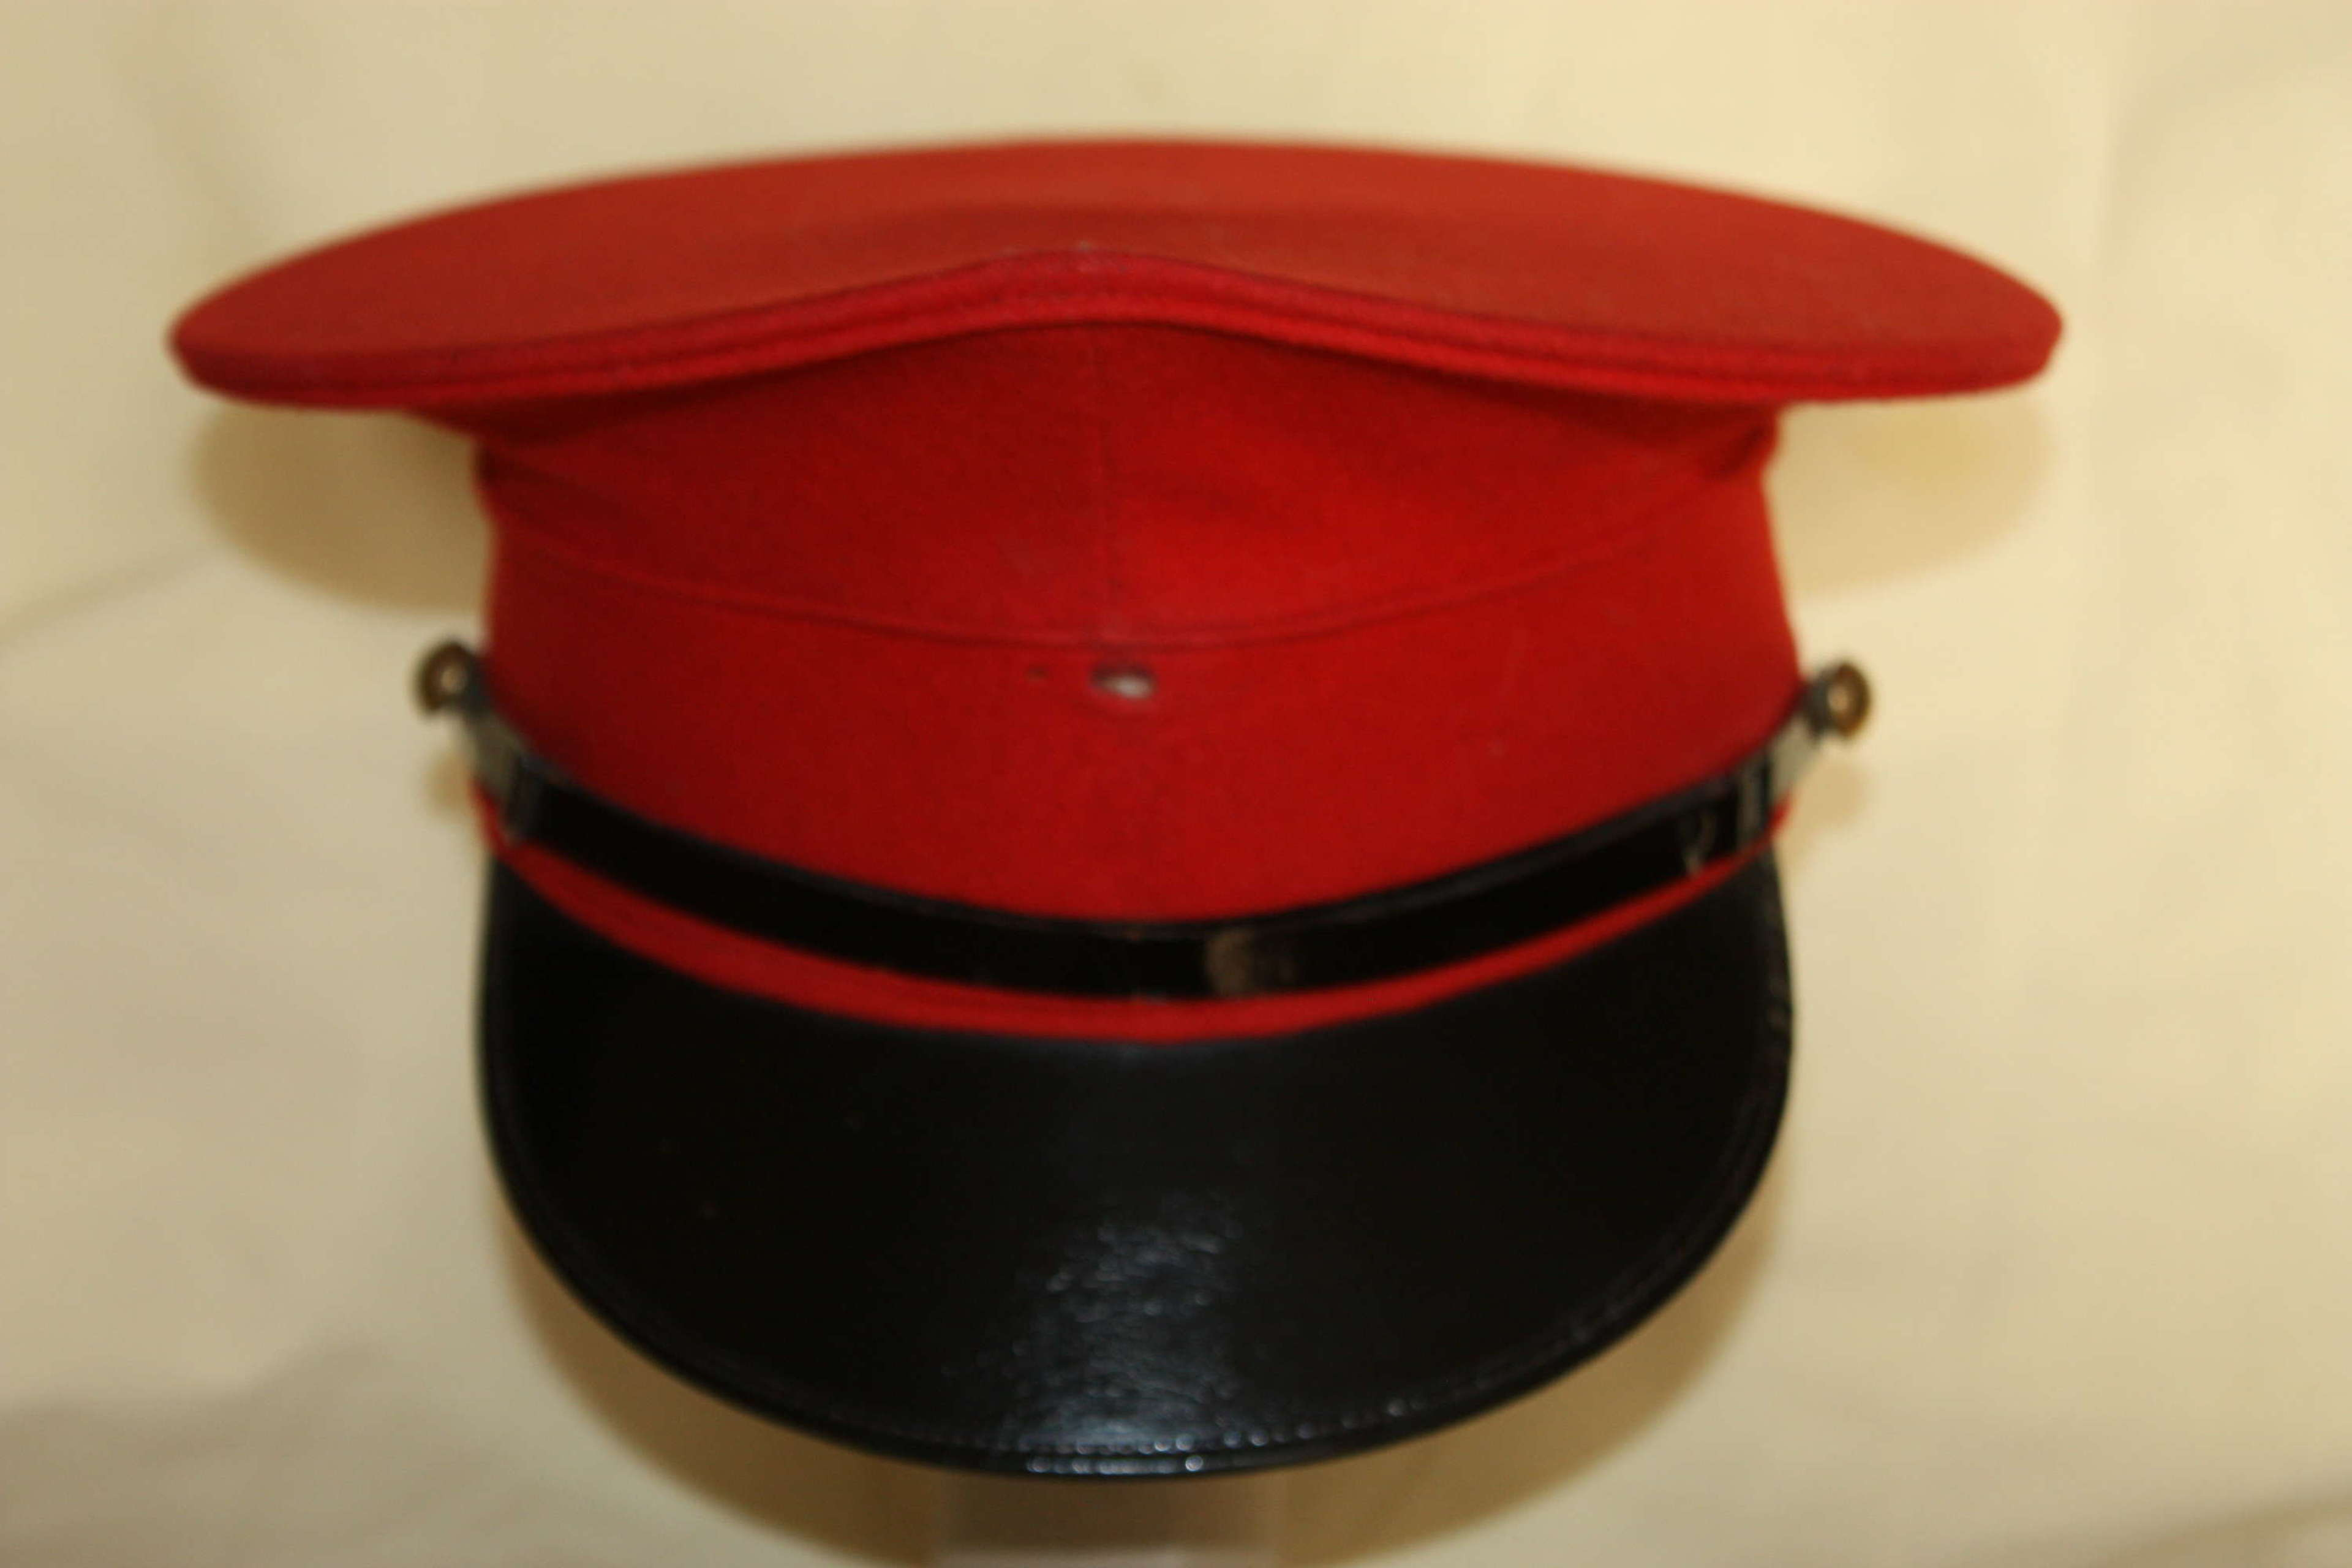 A VERY  RARE GOOD LATER INTER WAR PERIOD CAVLARY PEAKED CAP